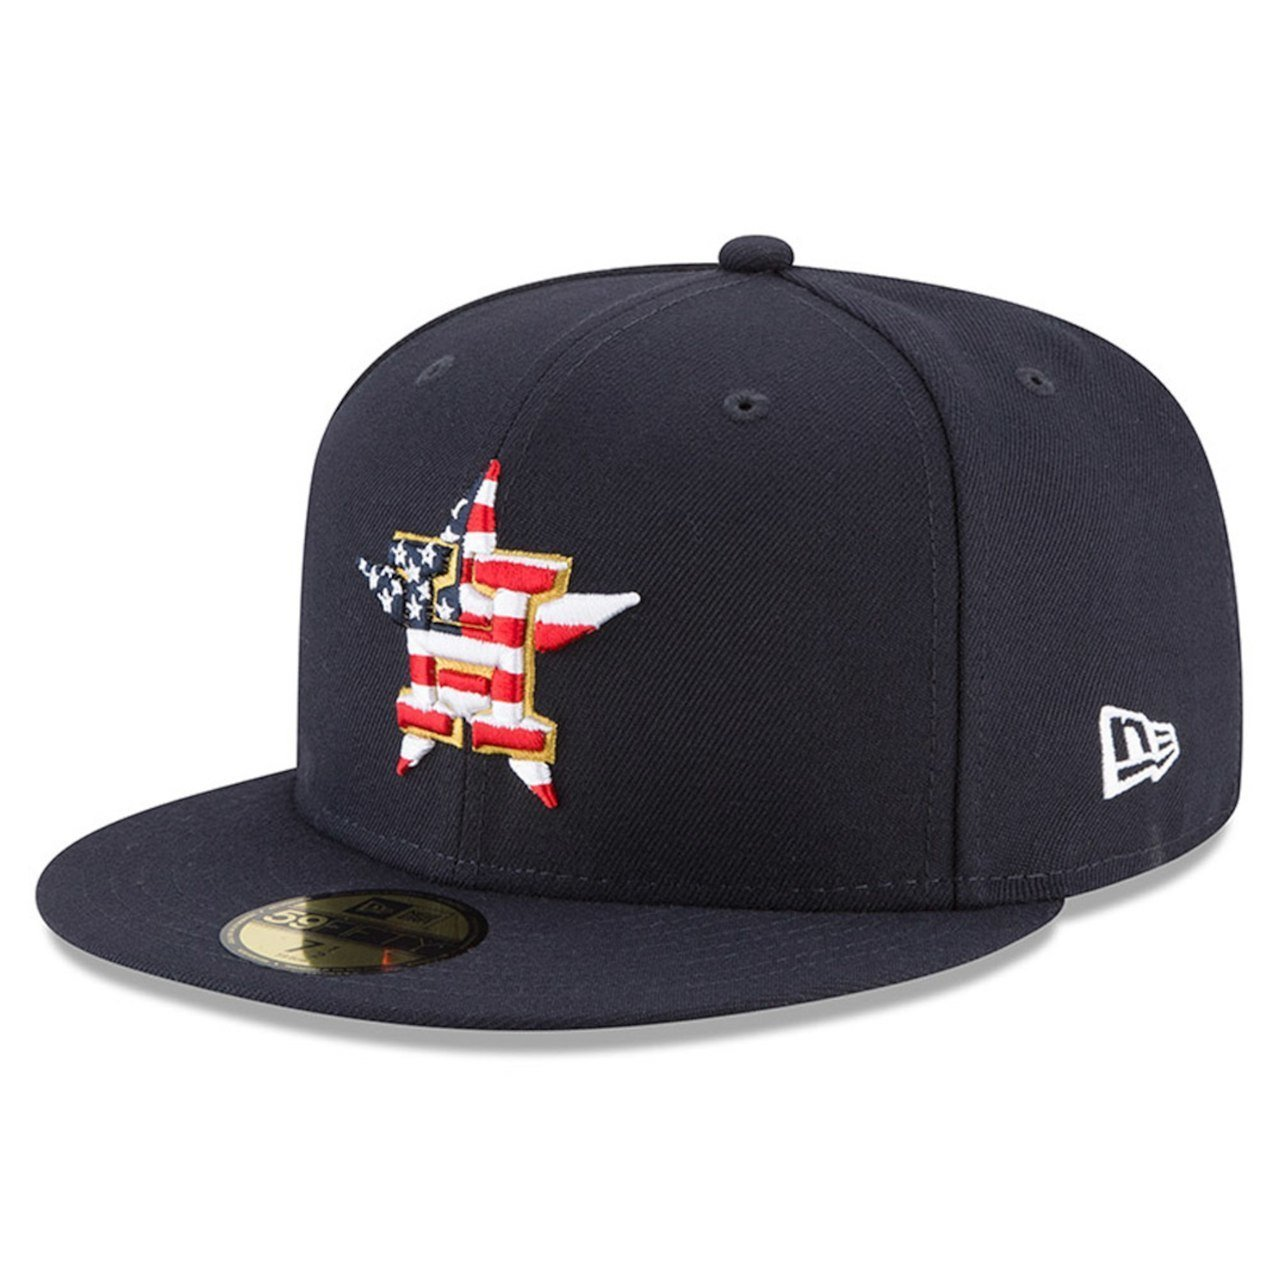 official photos 366b3 01c0b Amazon.com  New Era Houston Astros 2018 July 4th Stars and Stripes 59FIFTY  On Field Fitted Hat  Clothing